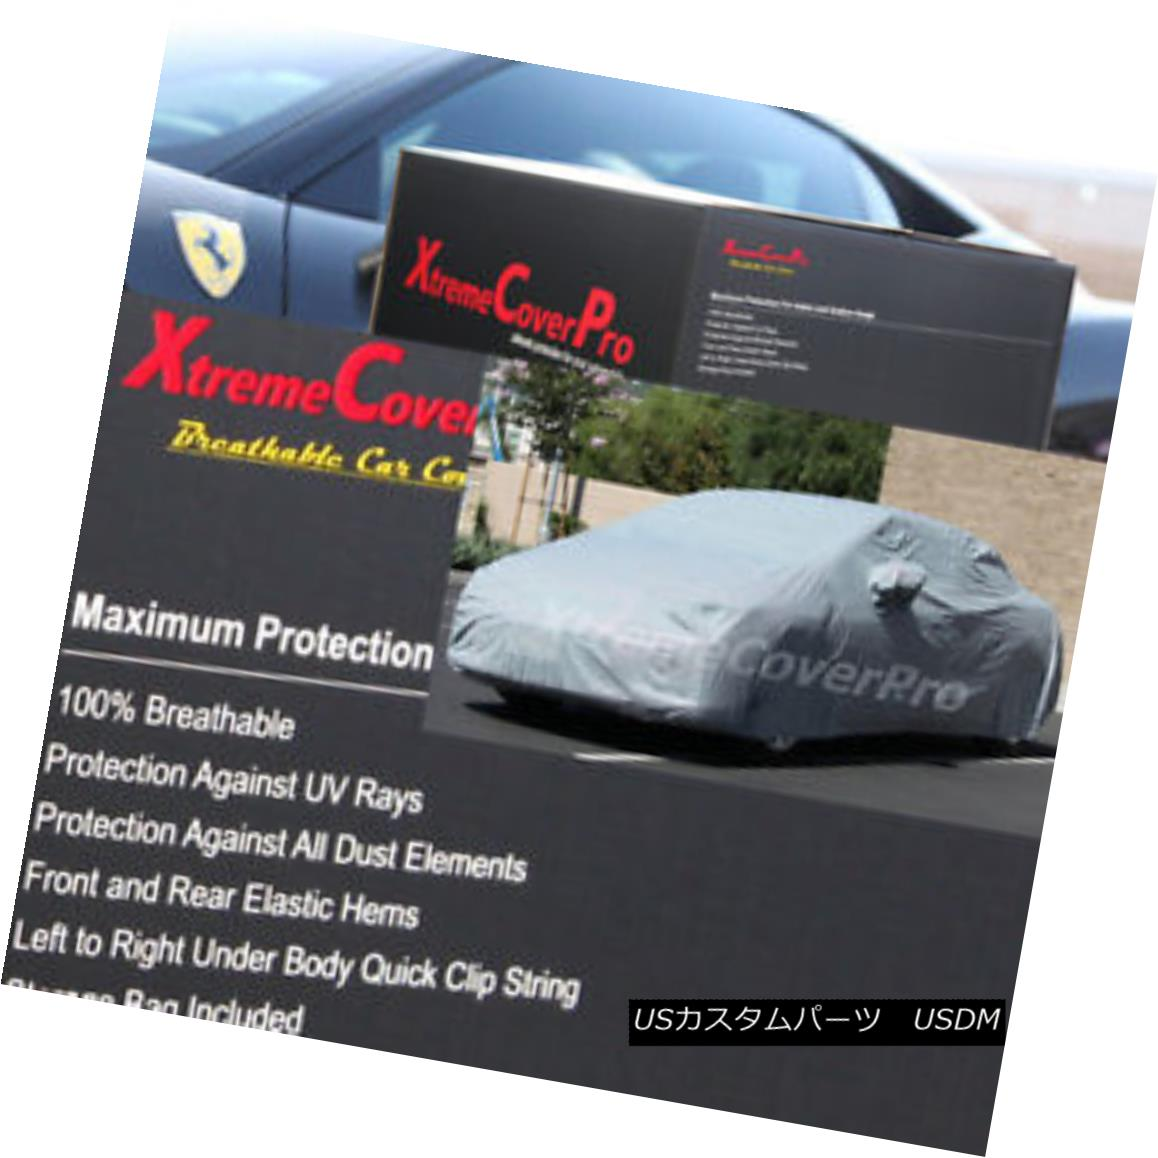 カーカバー 2014 MAZDA MAZDA3 4-Door sedan Breathable Car Cover w/ Mirror Pocket 2014 MAZDA MAZDA3 4ドアセダン通気性の車カバー(ミラーポケット付)